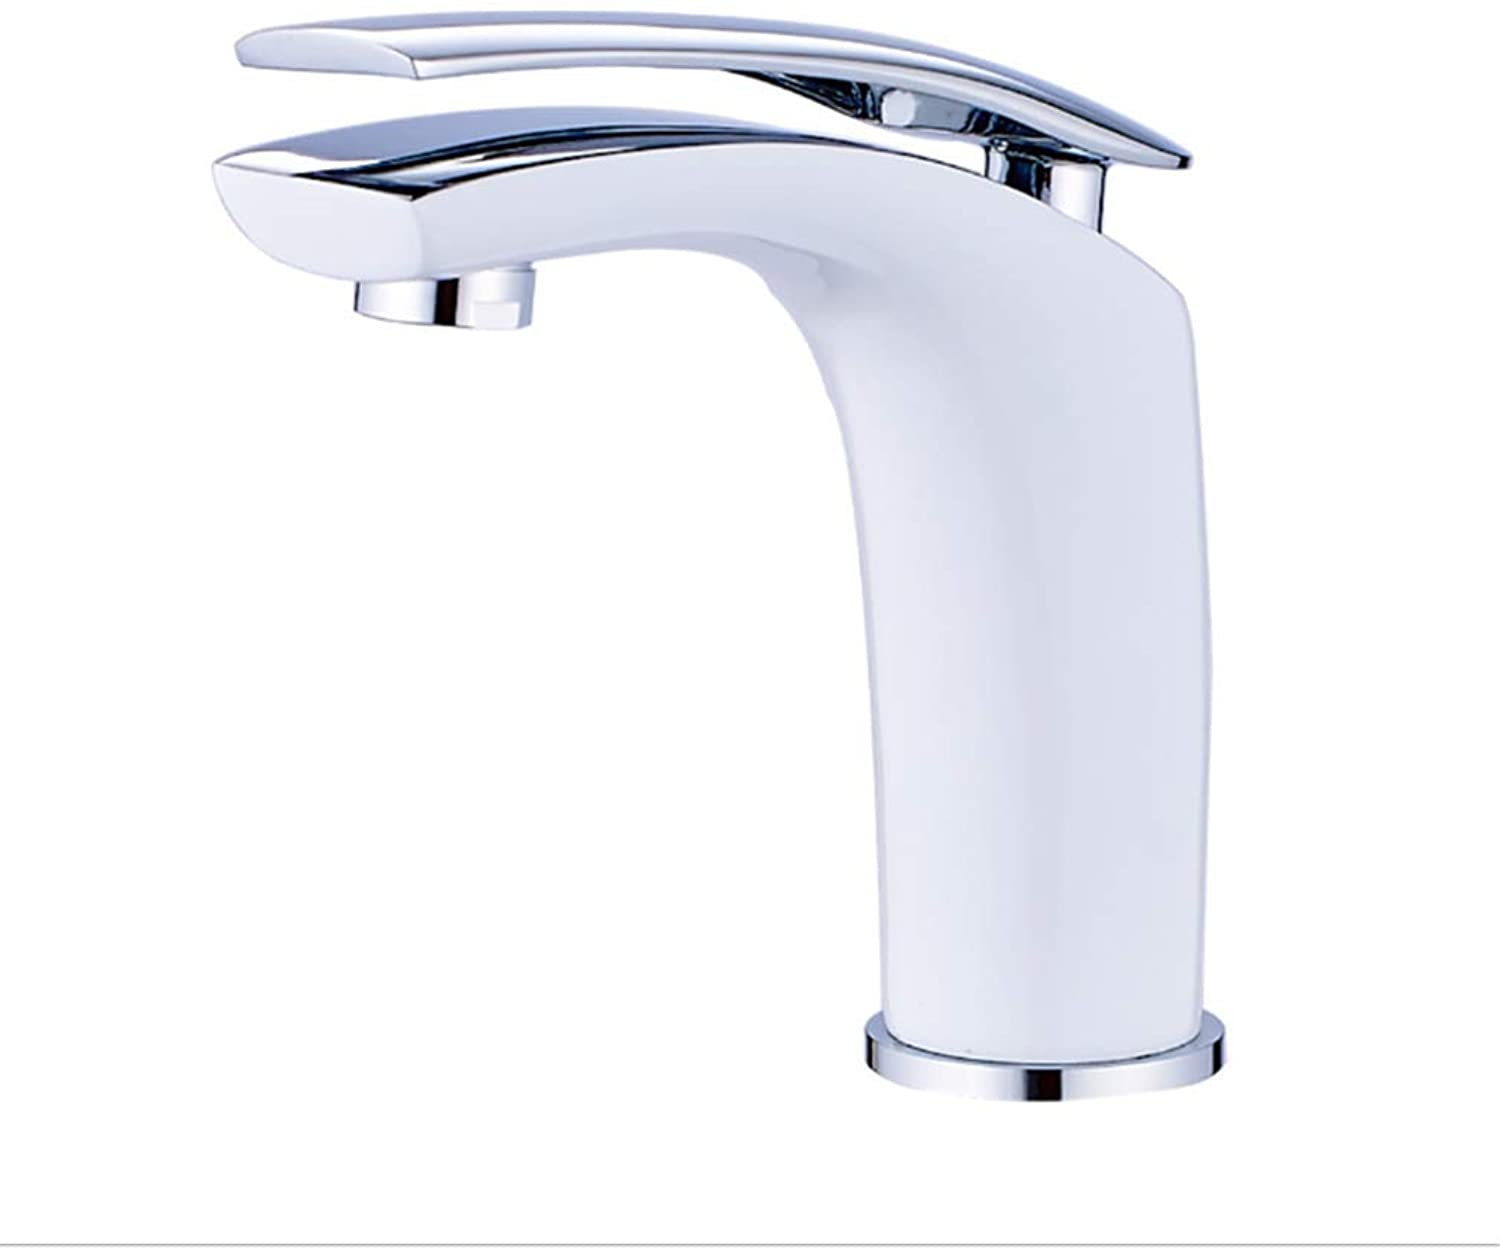 Kitchen Taps Faucet Modern Kitchen Sink Taps Stainless Steelbathroom Basin Single-Hole Sitting Cold and Hot Faucet